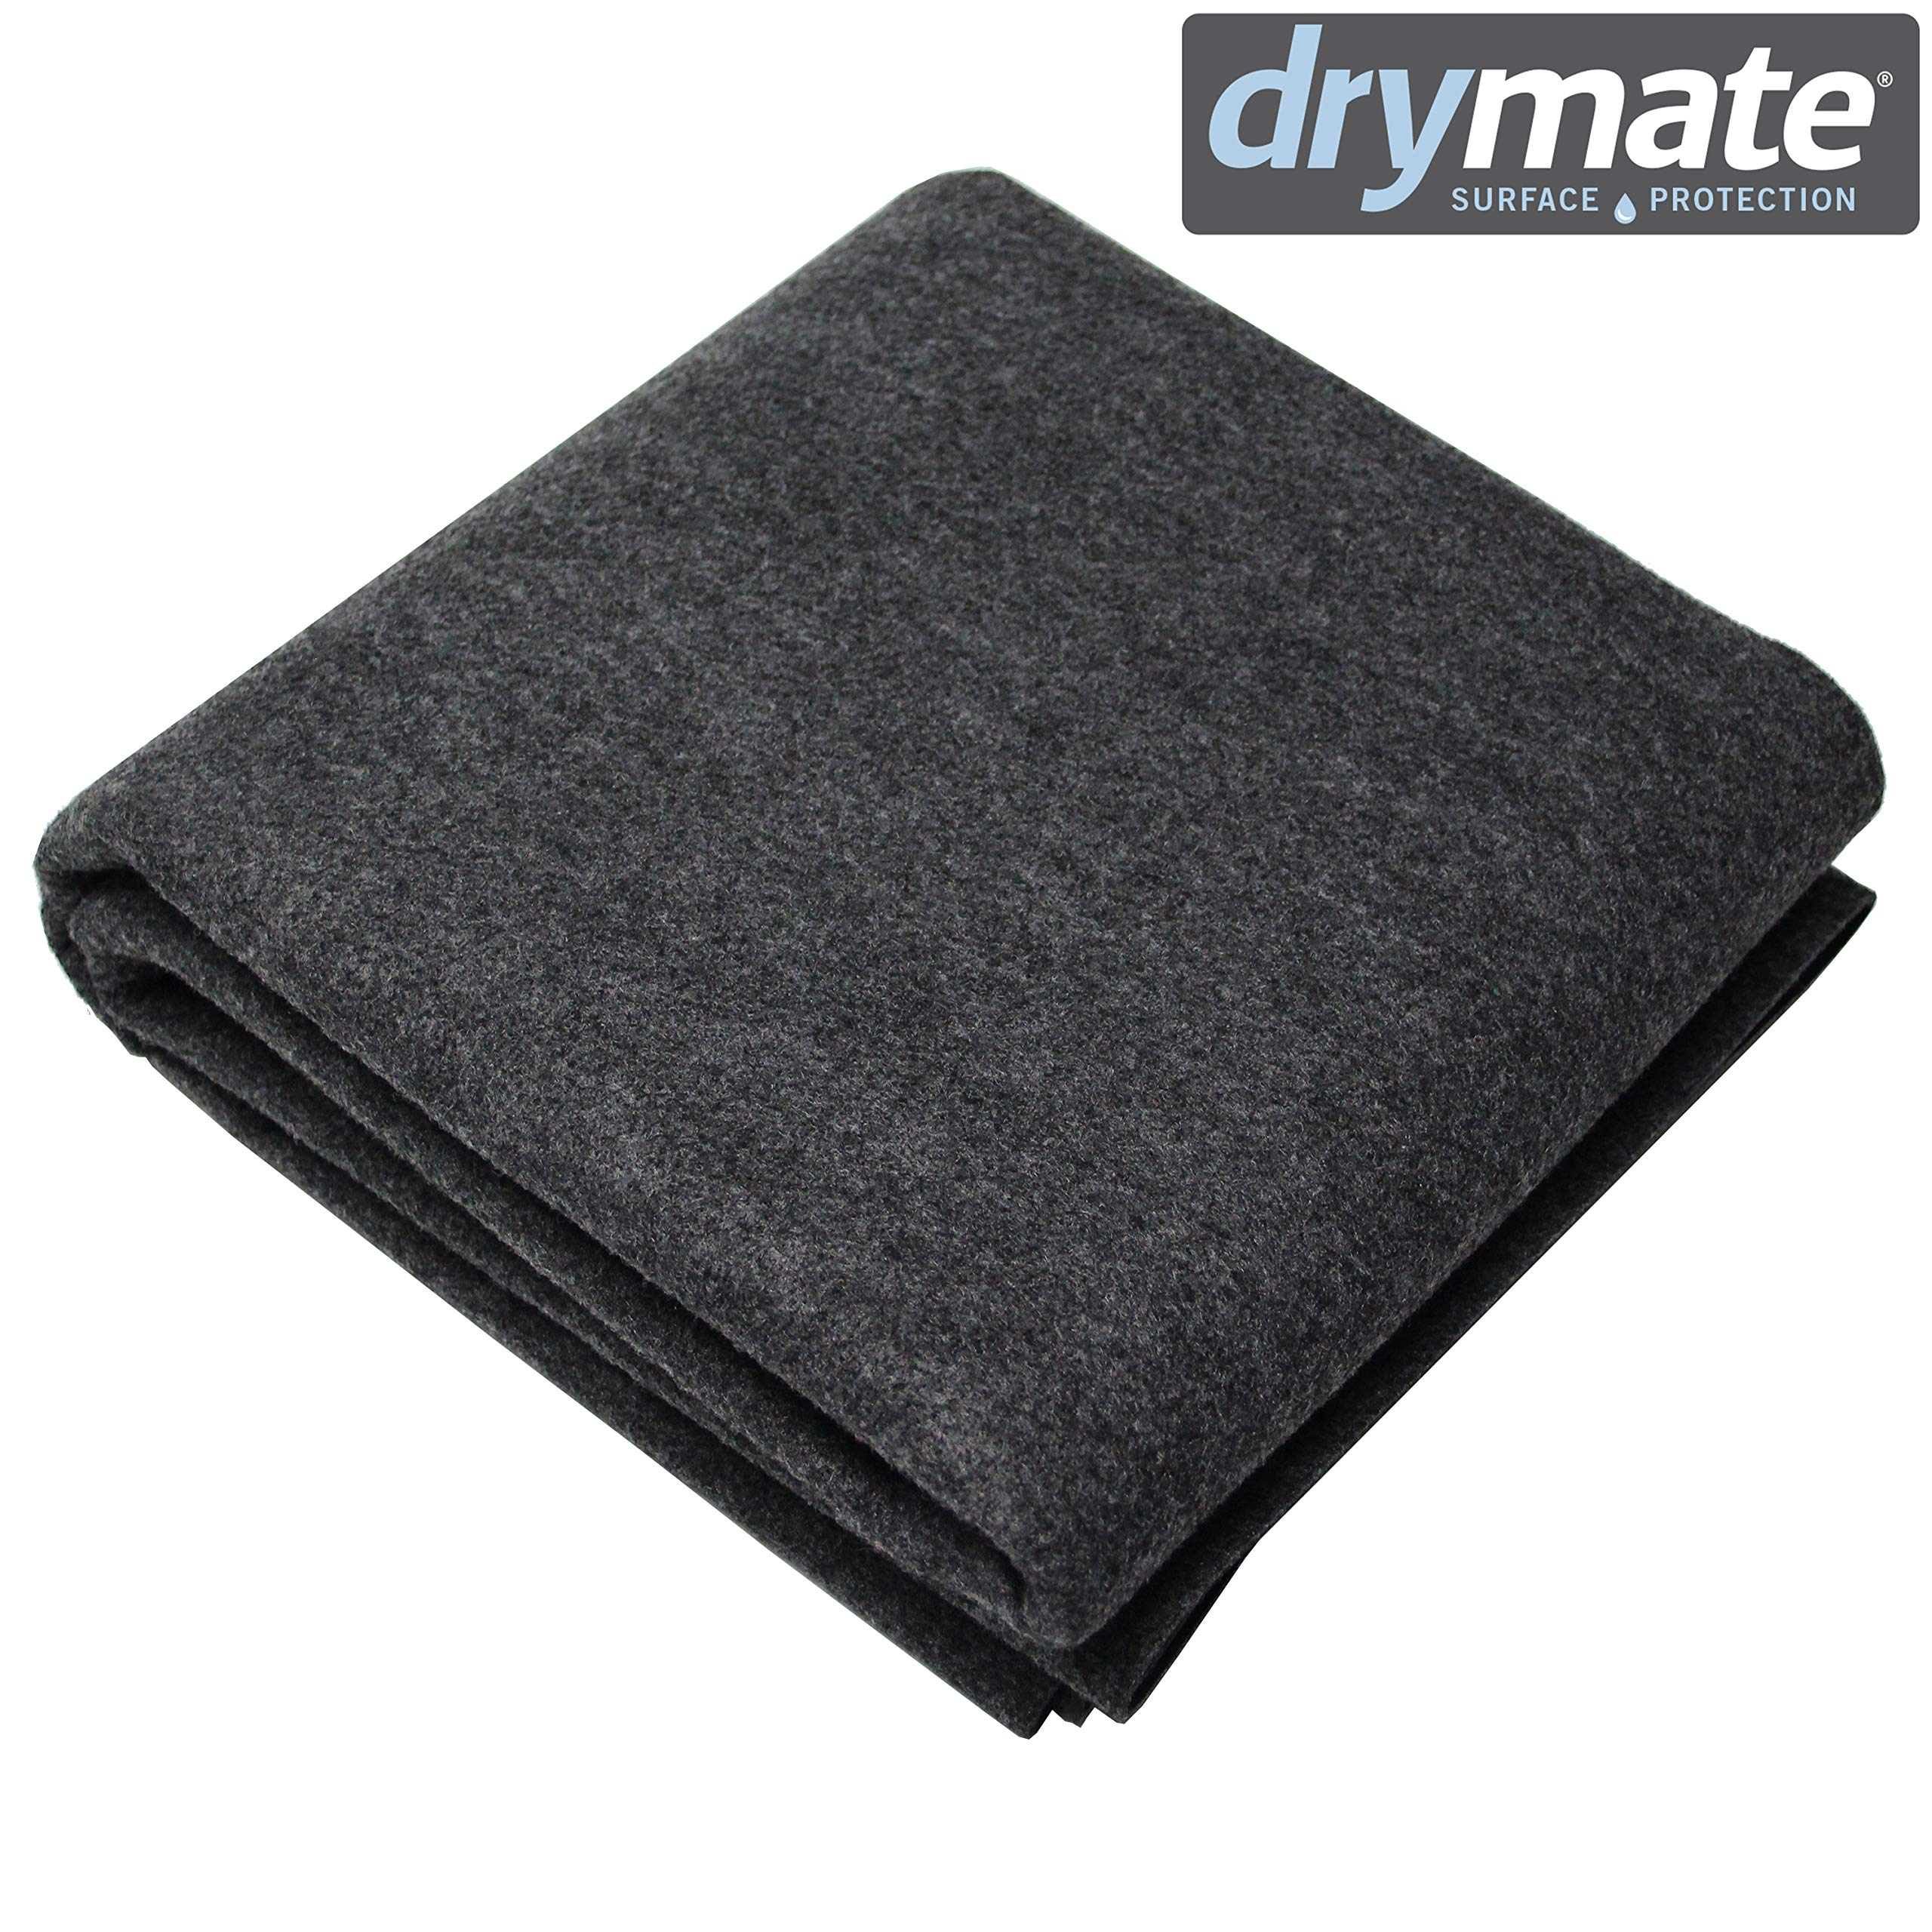 Drymate Whelping Box Liner Mat, 48'' x 50'' - Machine Washable, Reusable and Absorbent Dog Whelping Pad - Can Be Cut to Fit, USA Made